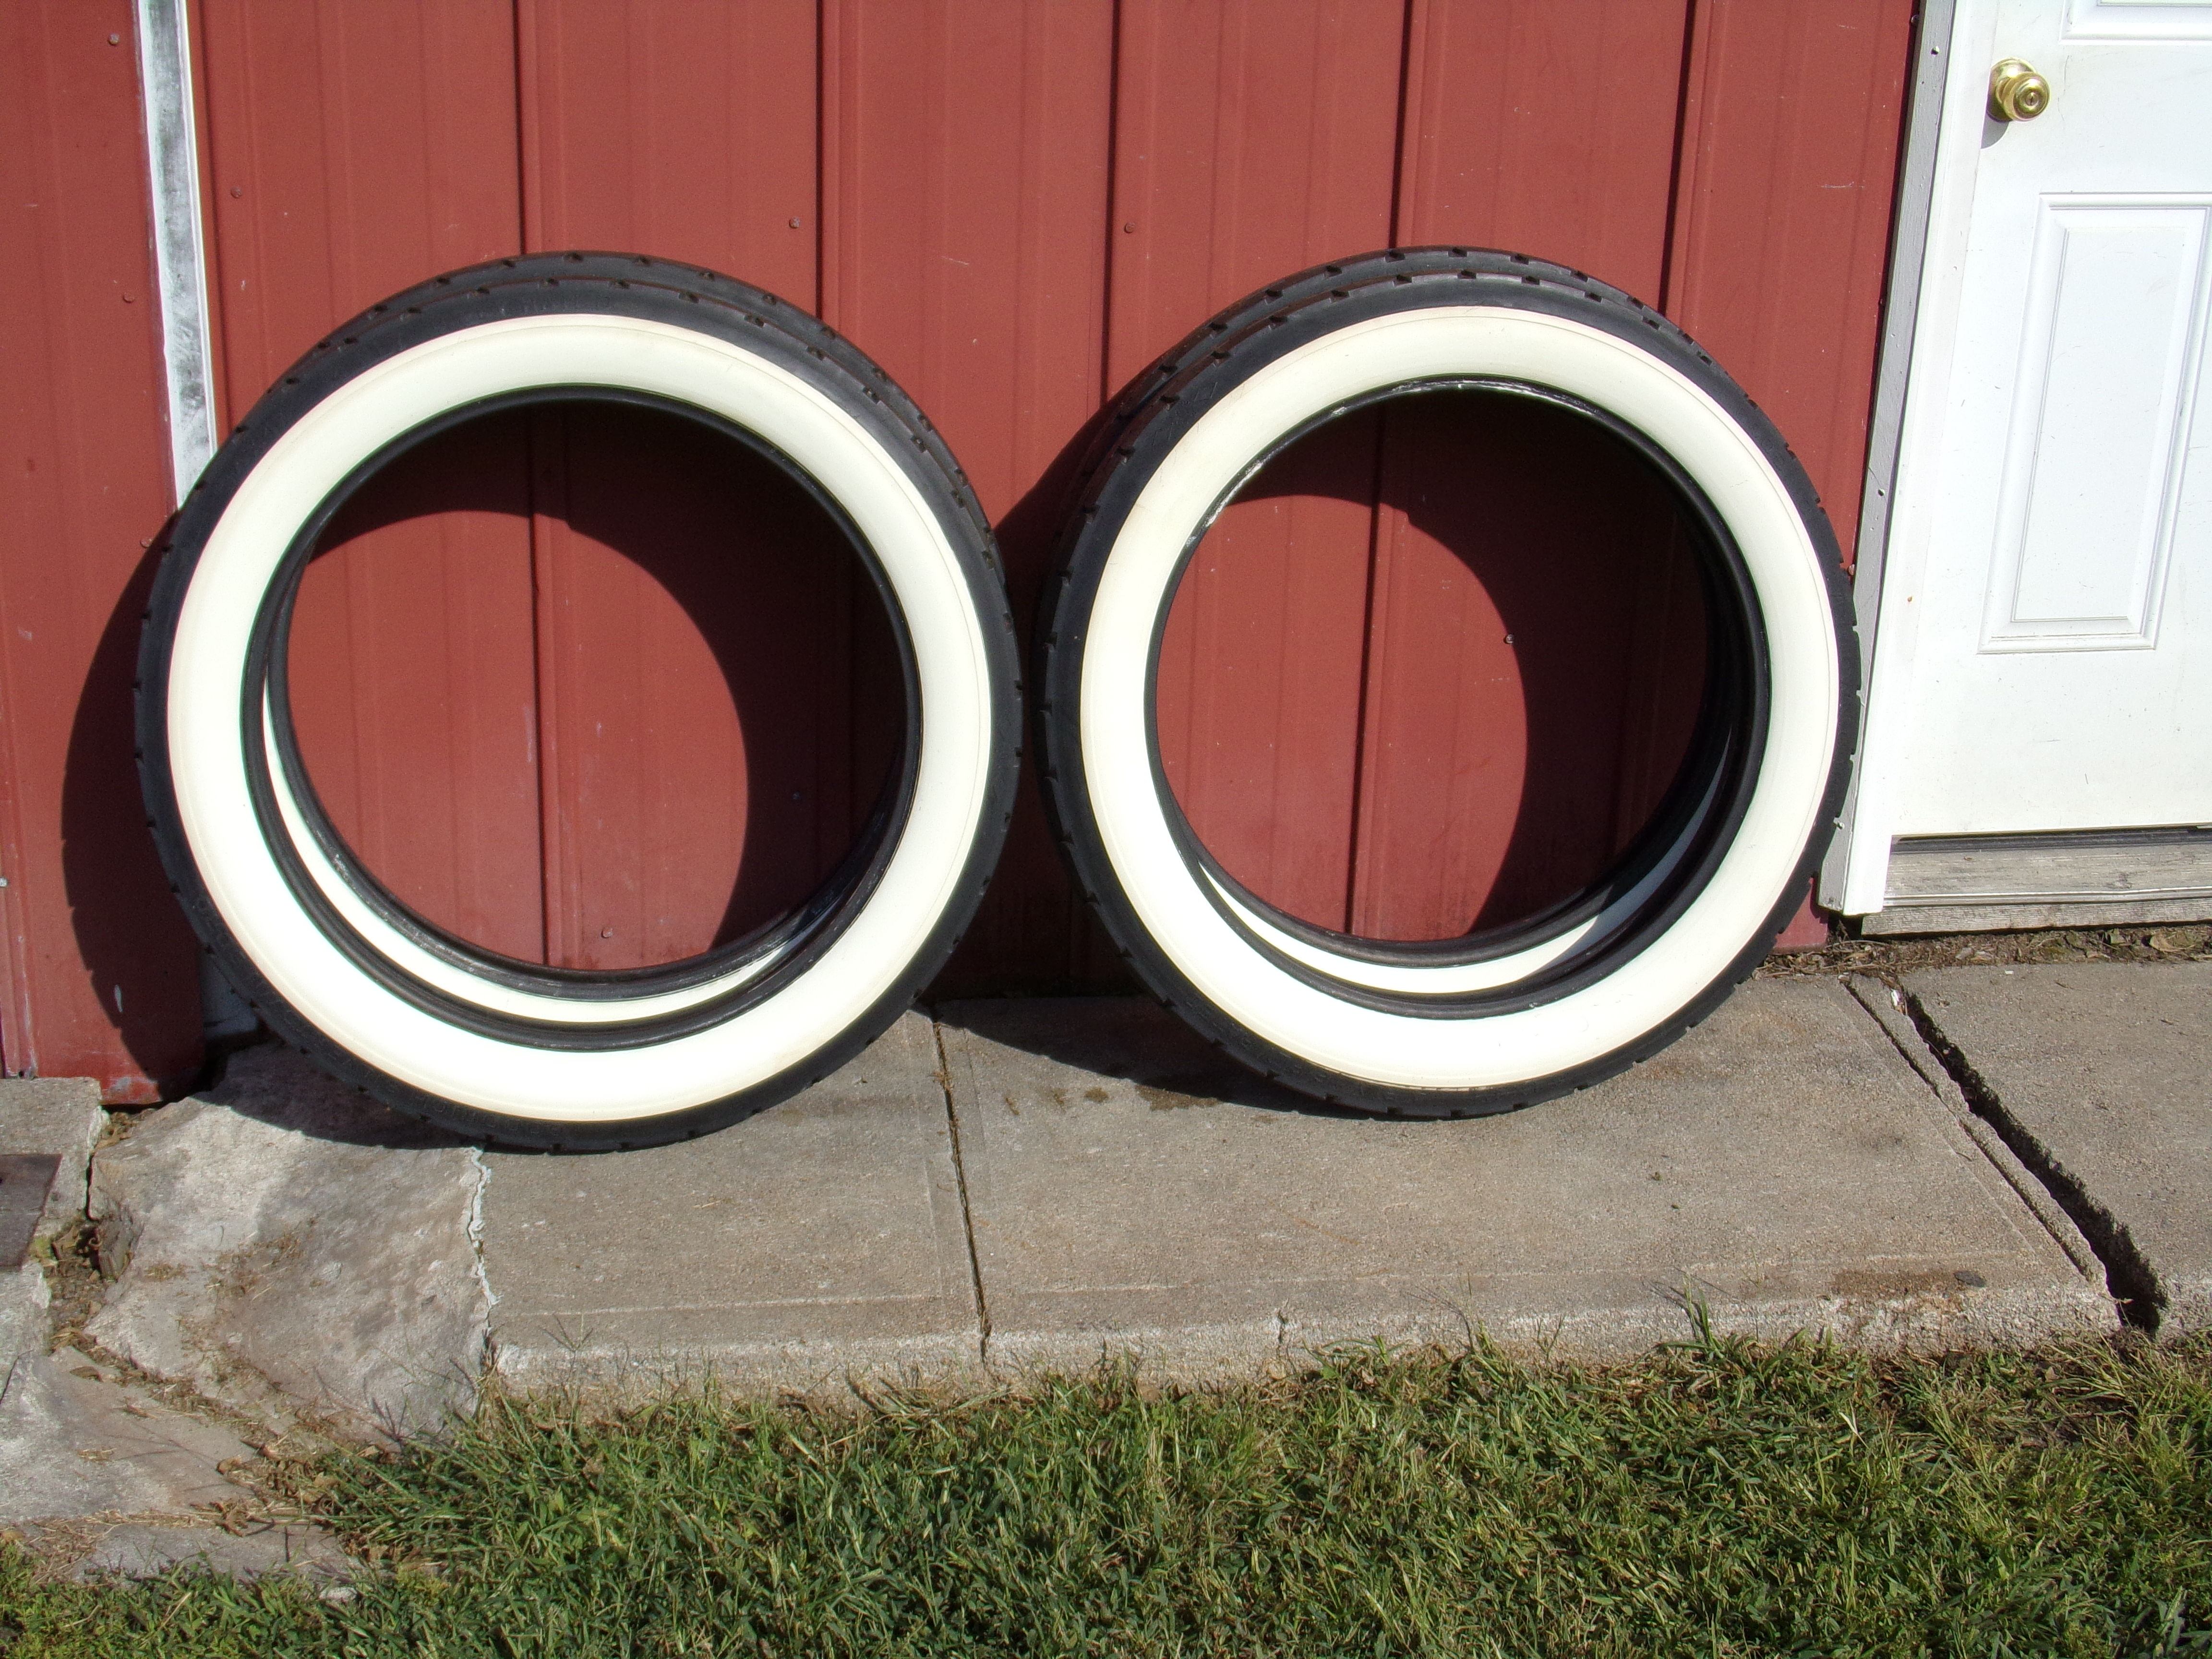 Set of new 34 X 4 1/2 WW tires - Cars For Sale - Antique Automobile ...